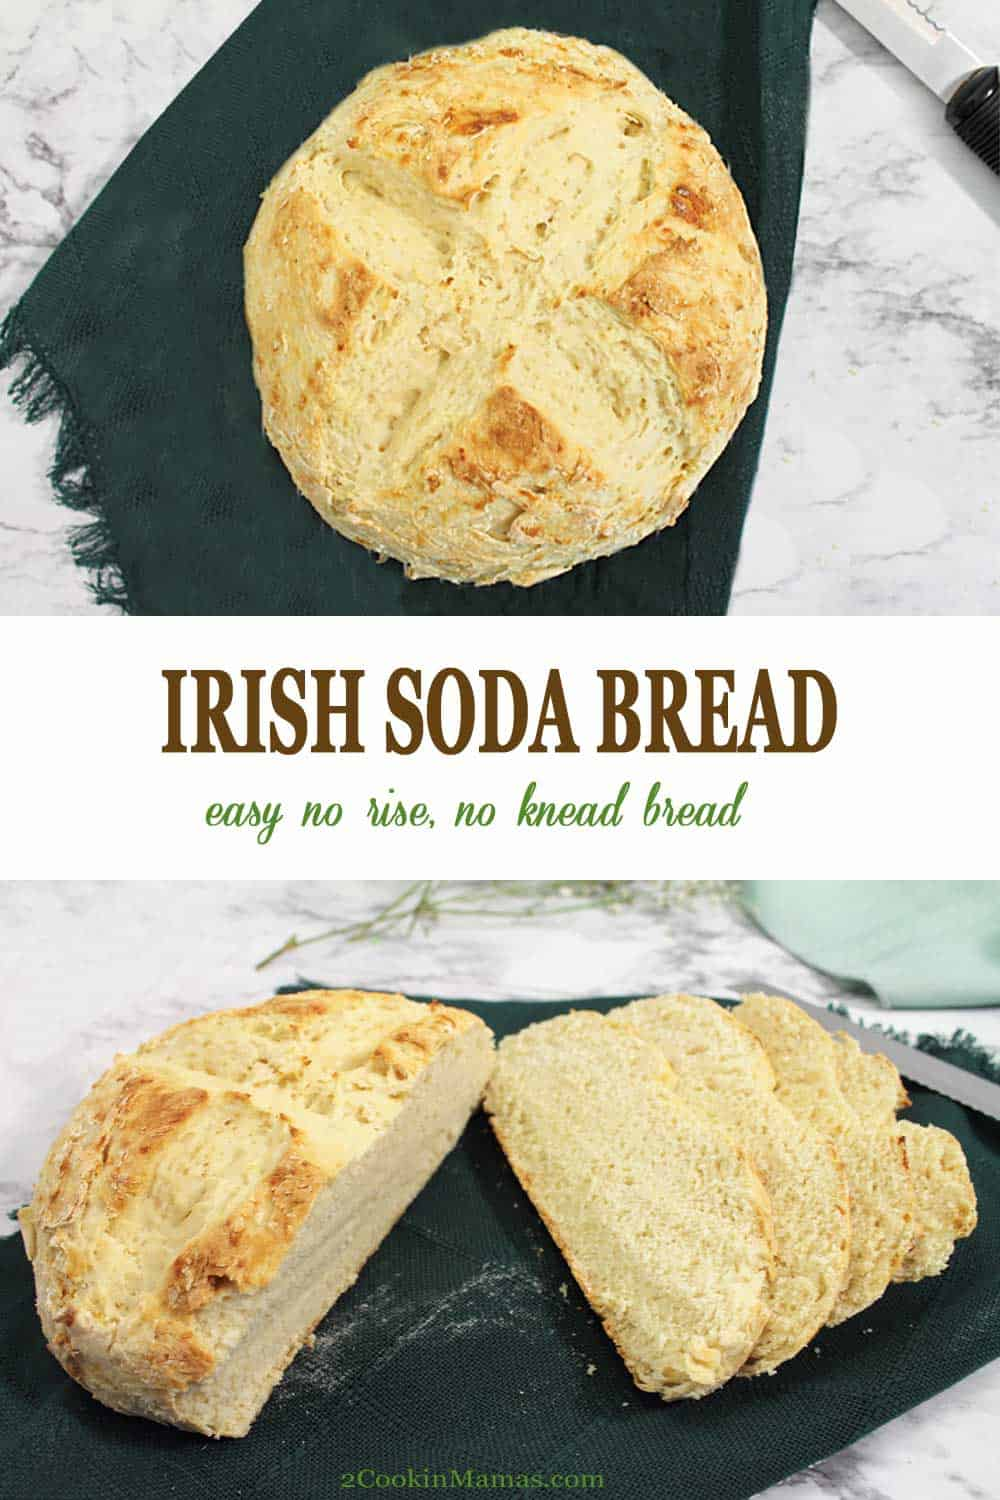 5 Ingredient Irish Soda Bread | 2 Cookin Mamas An easy no yeast, no knead Irish Soda Bread with only 5 ingredients. Think you can't make bread, think again! This simple recipe will have you enjoying a soft, dense bread complete with crispy crust with only 10 minutes of prep and a 40 minute bake. A great addition to any St. Patrick's Day dinner. #bread #quickbread #easy #traditional #stpatricksday #noyeast #recipe